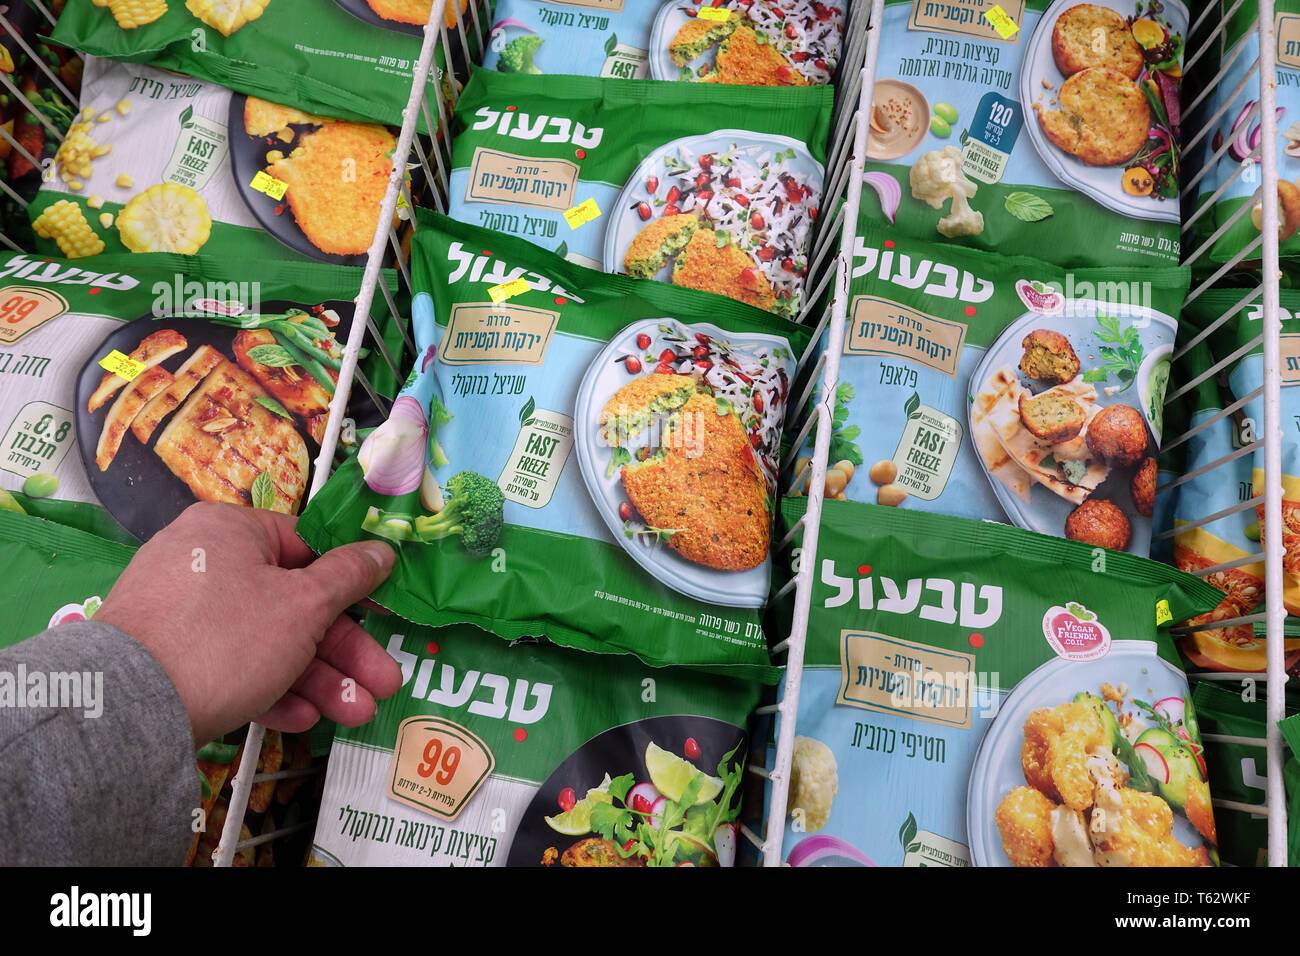 Frozen food packages in a Freezer of a Victory supermarket. - Stock Image